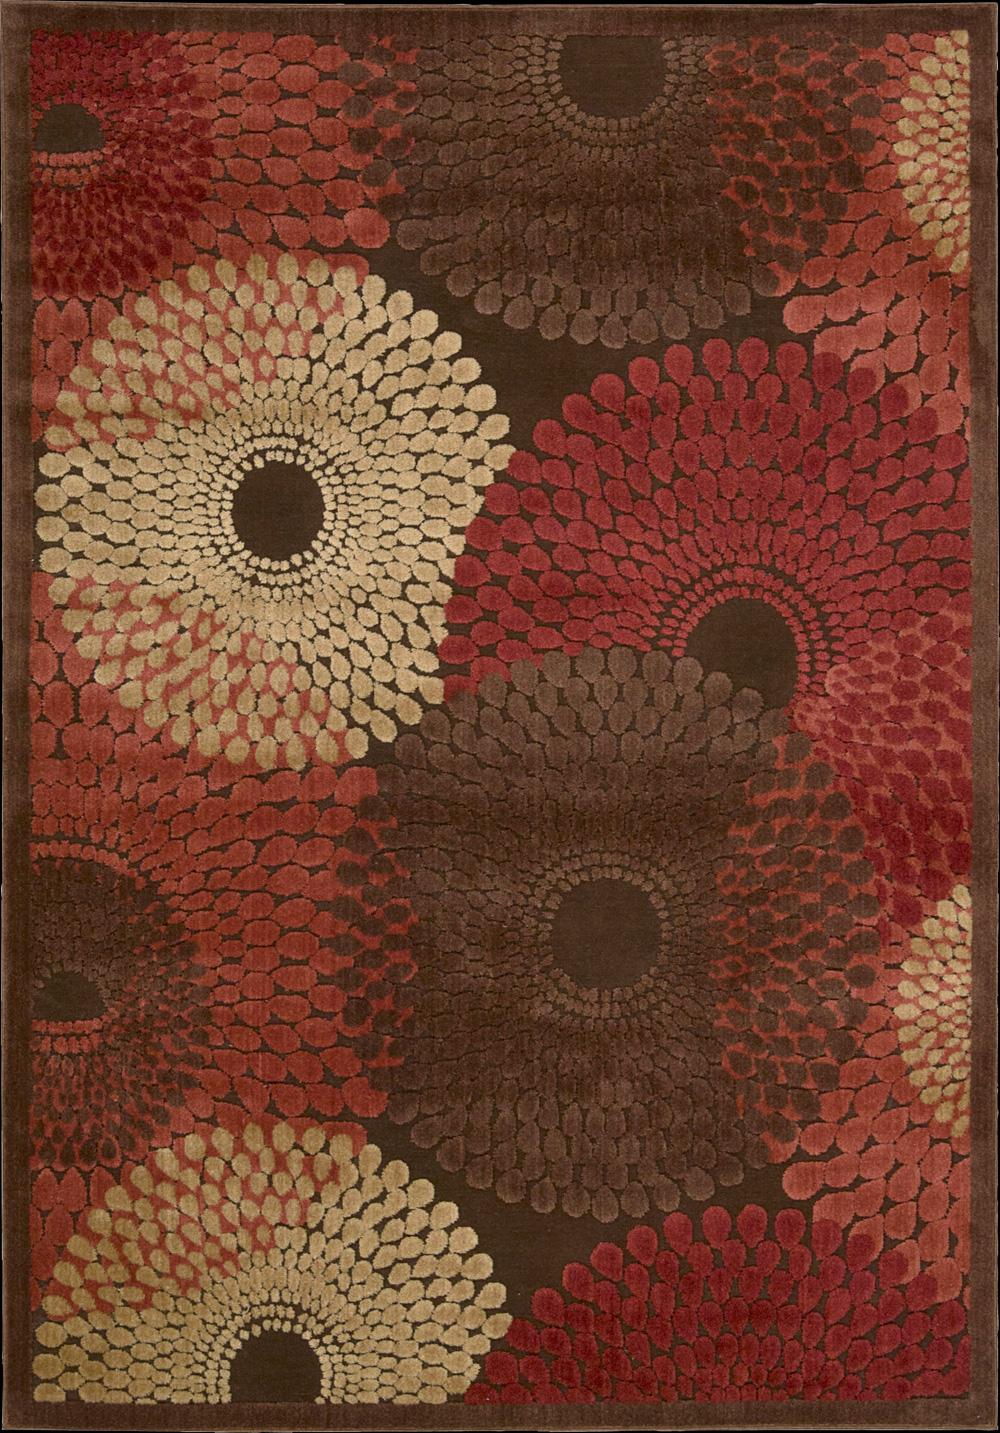 "Nourison Graphic Illusions Area Rug 7'9"" x 10'10"" - Item Number: 13302"